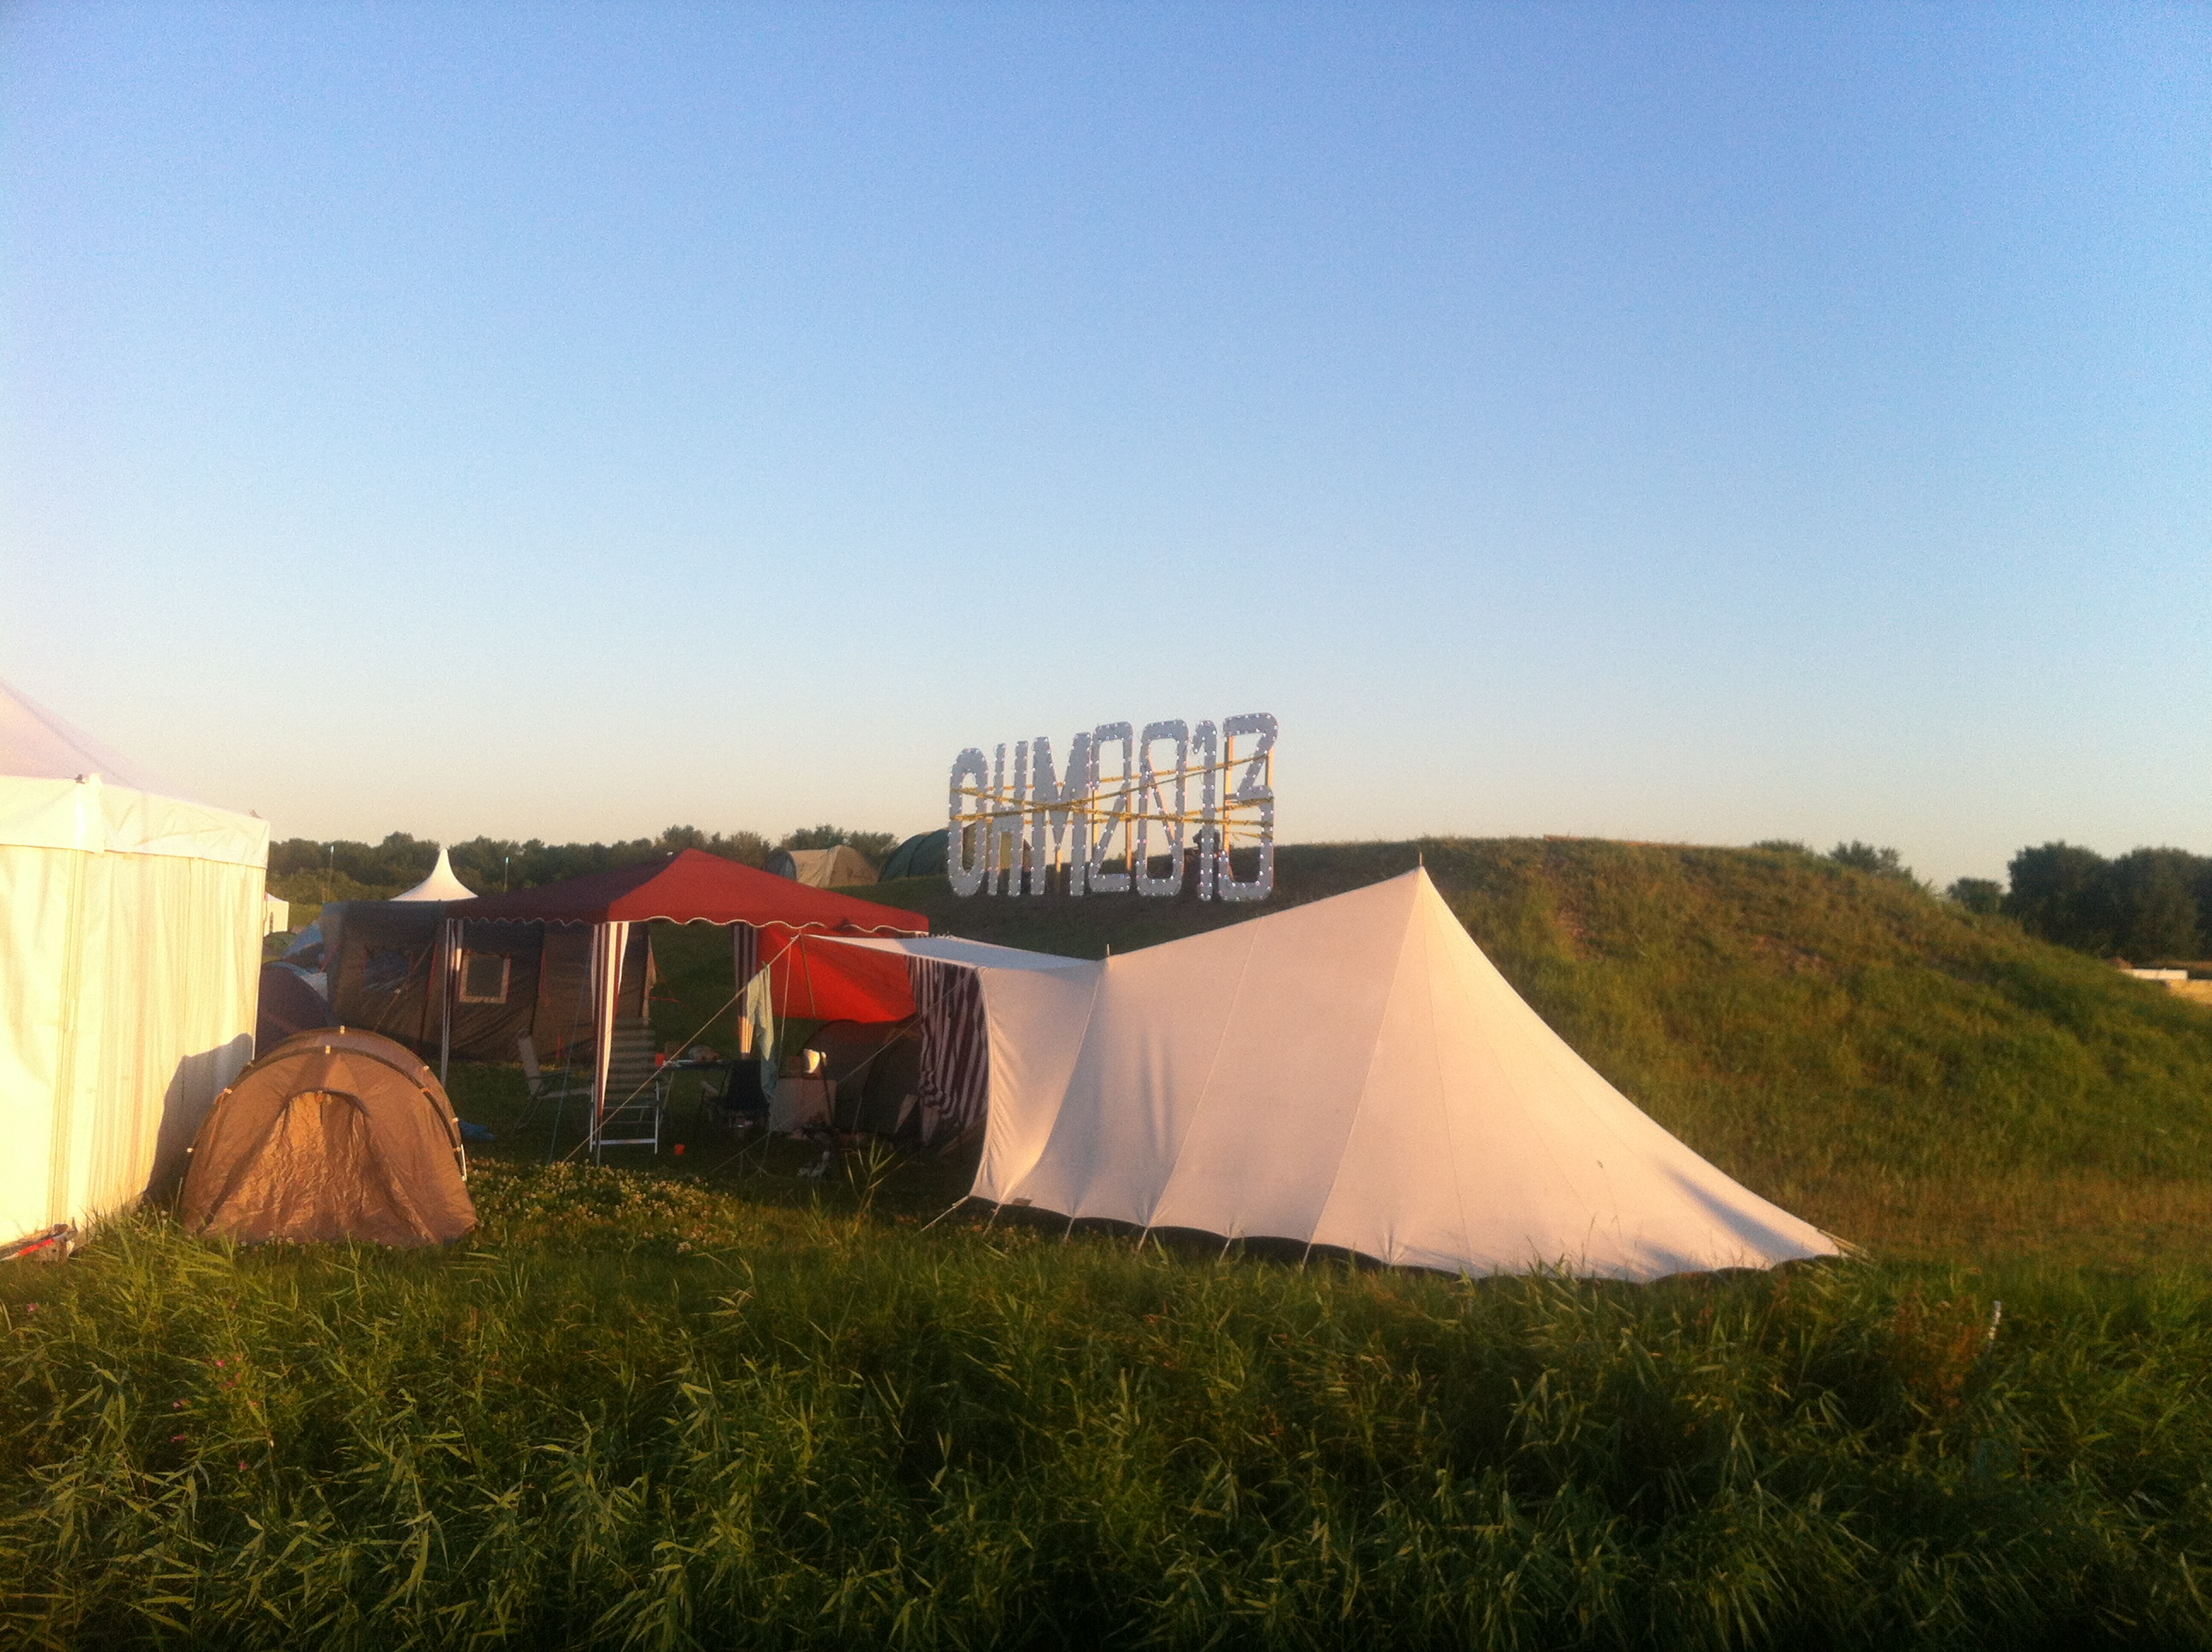 OHM2013wrapped